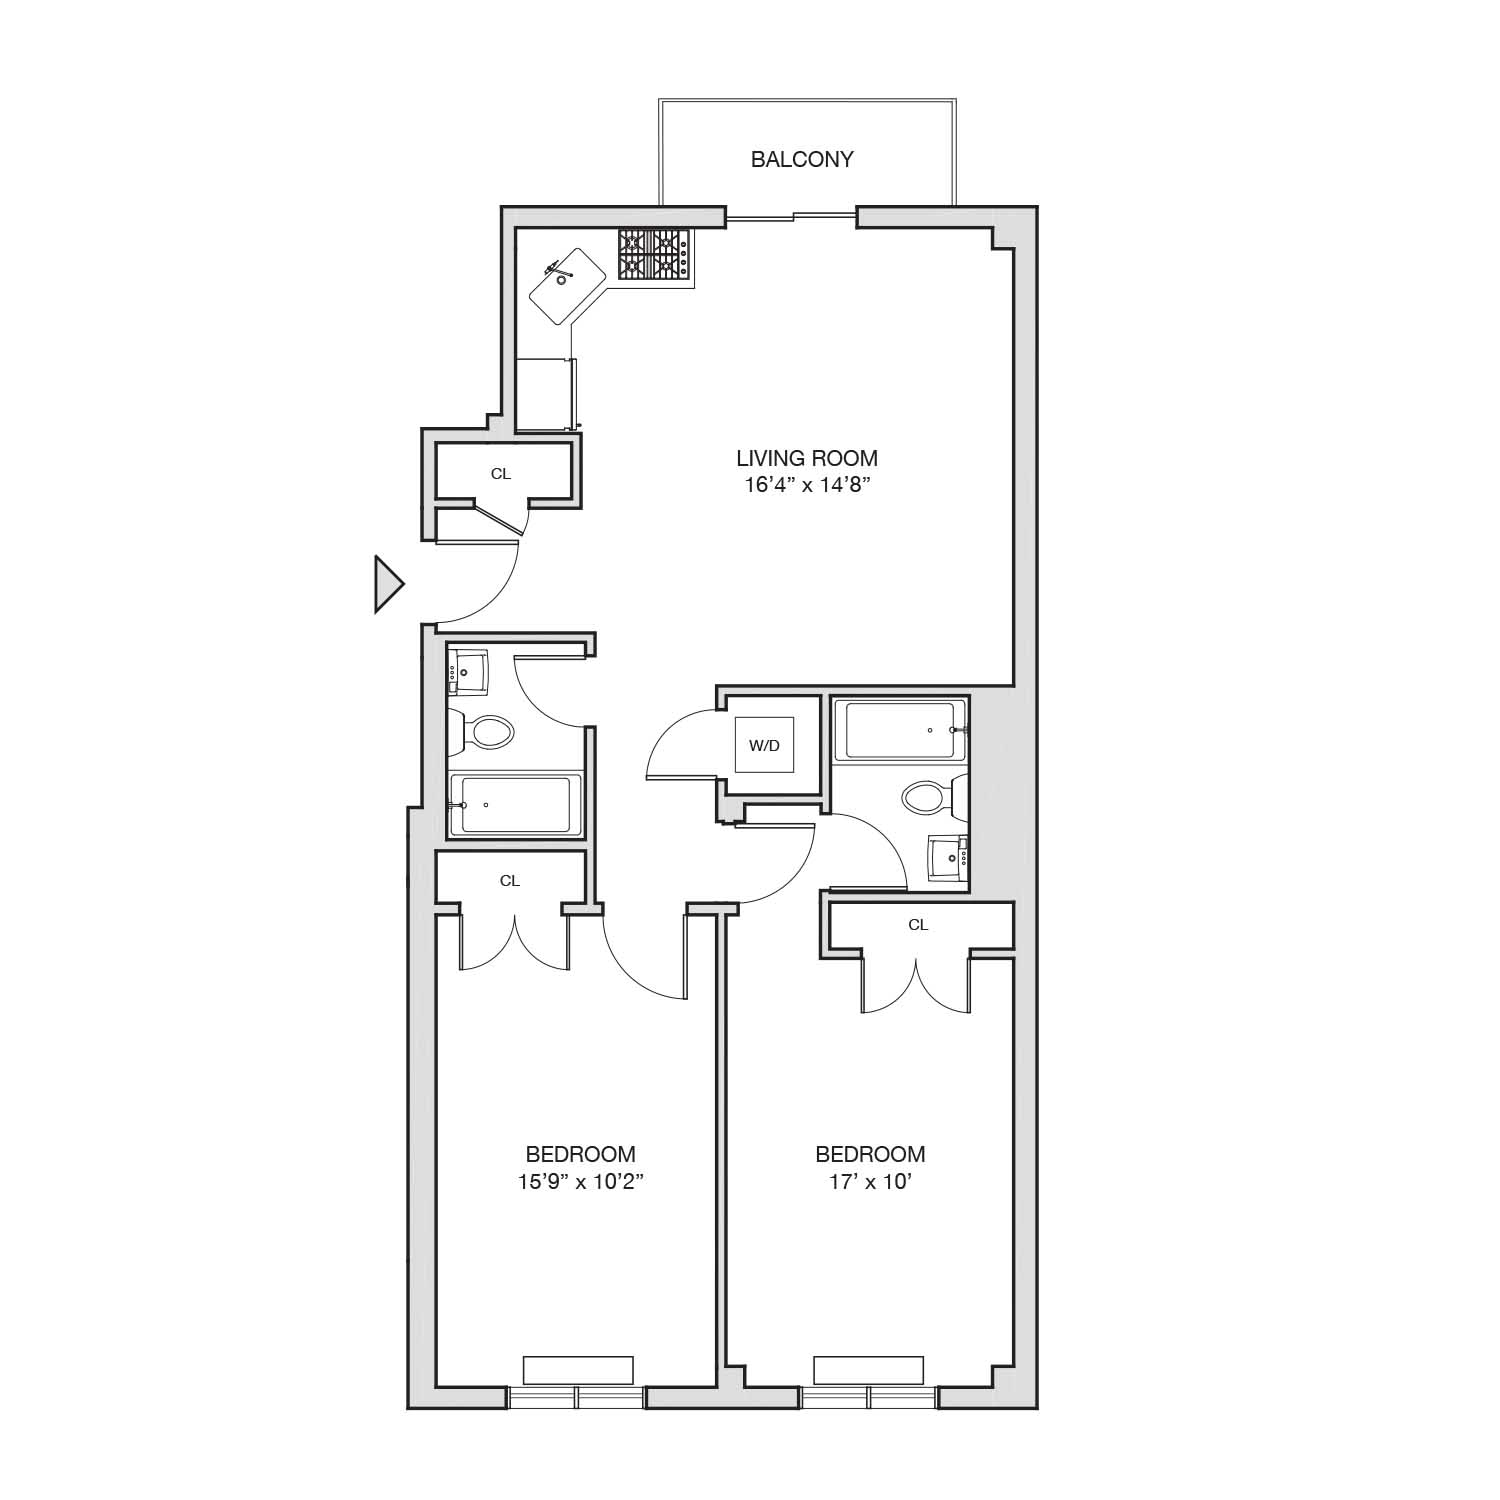 B 2 floor plan diagram. Two bedrooms, two bathrooms, an open living and kitchen area, a patio, and a washer dryer.